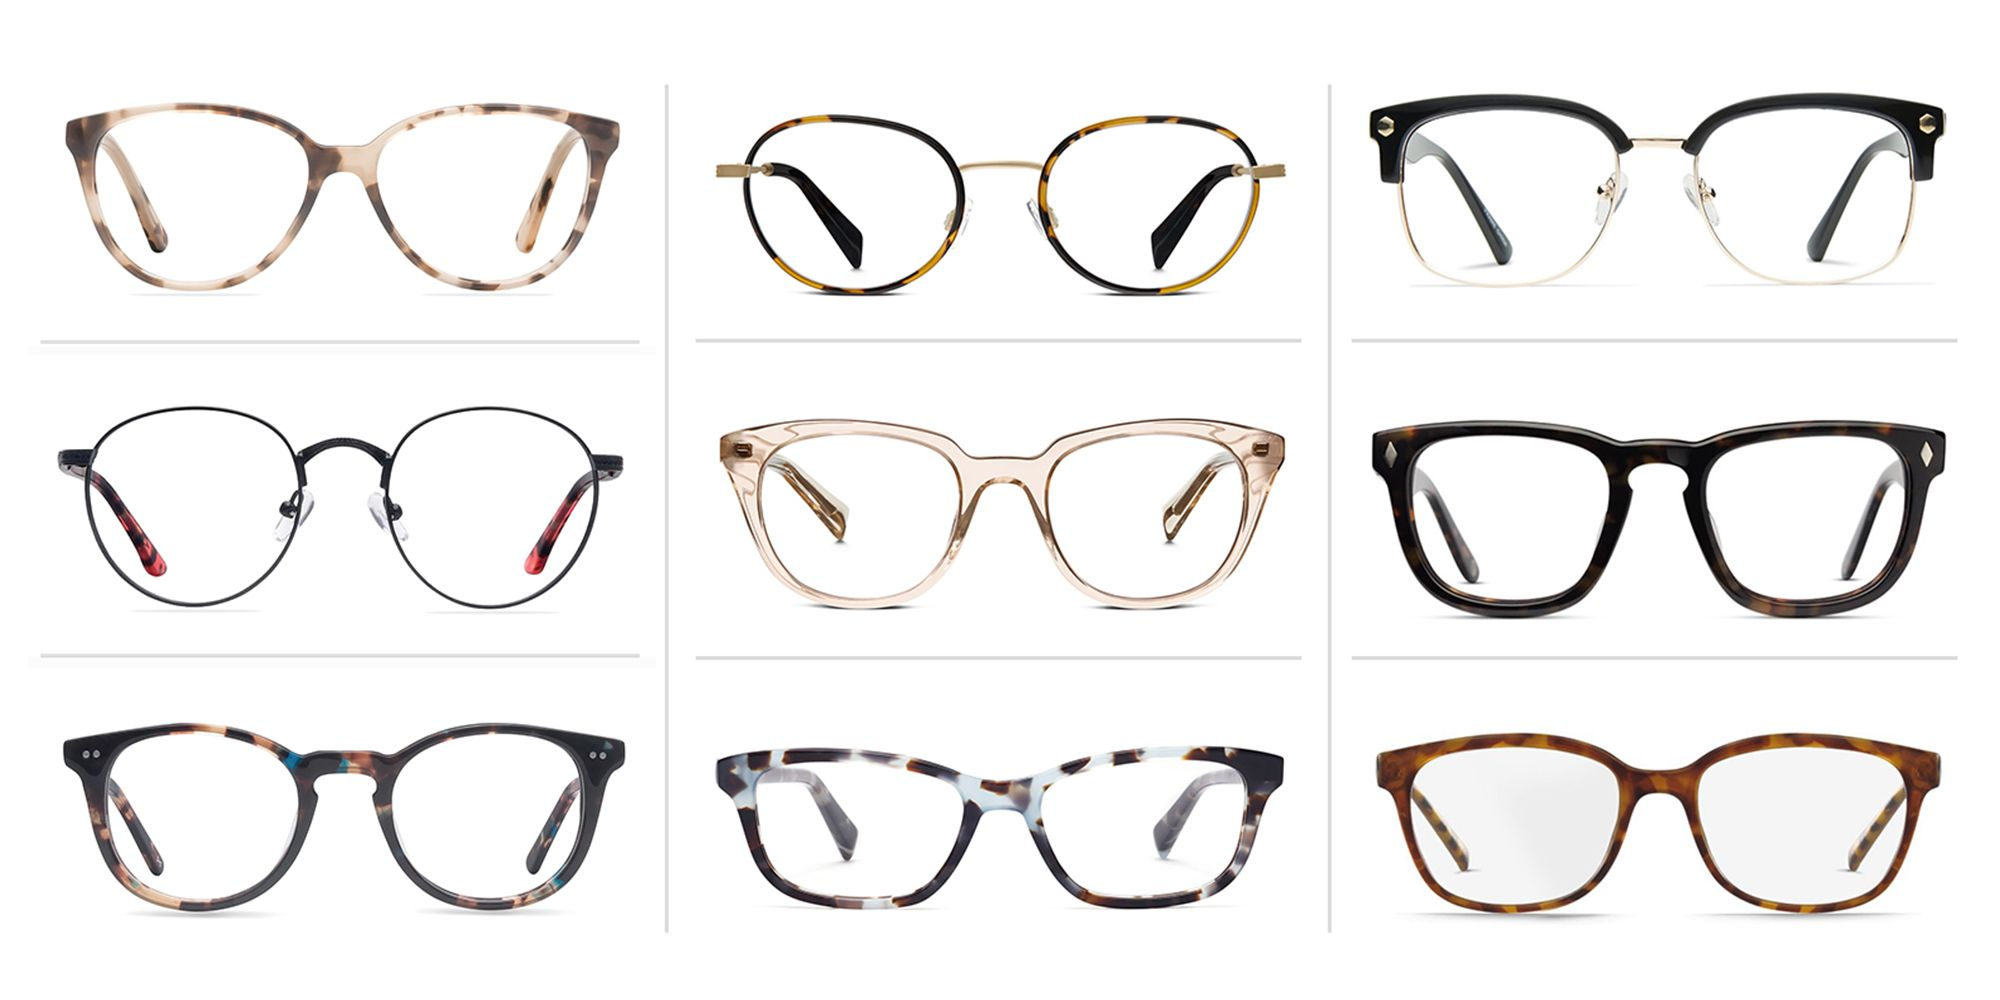 7812922772c 7 Best Places to Buy Glasses Online 2018 - Where to Buy Cheap ...